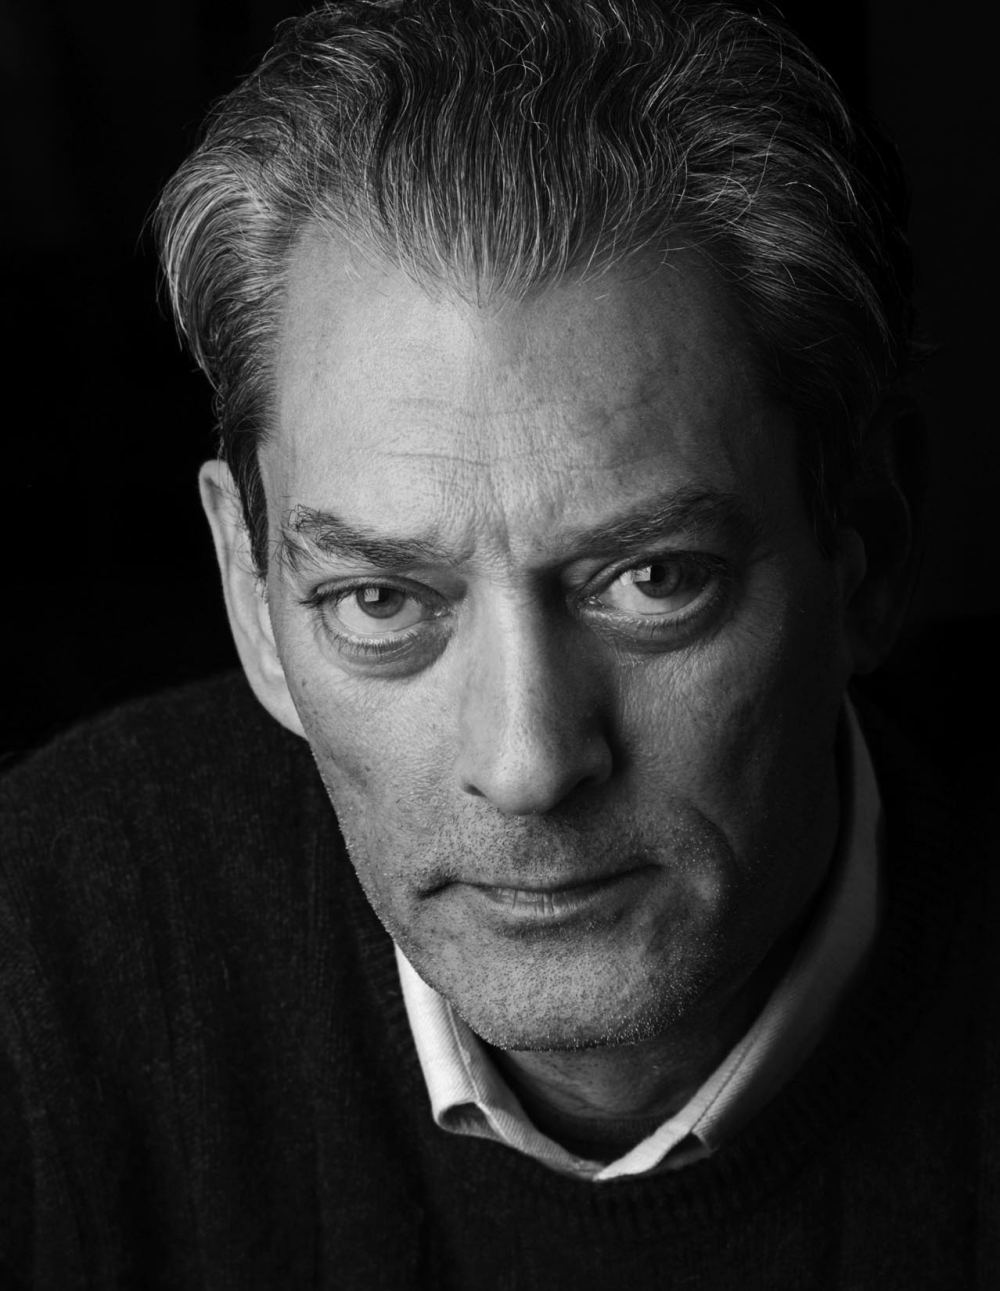 paul auster - credit LotteHansen.jpg